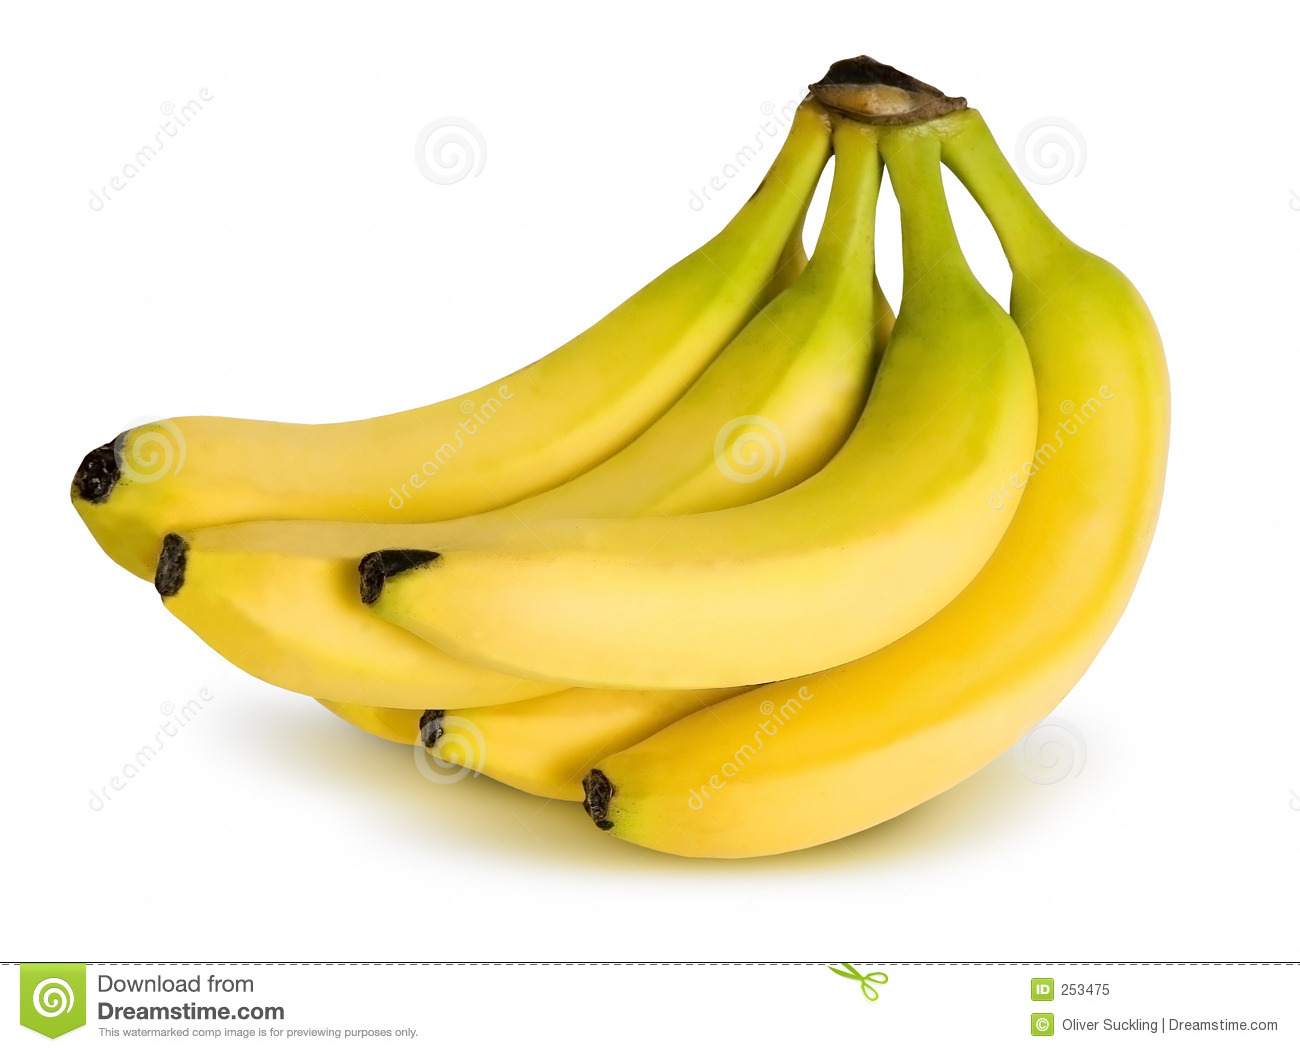 Banana bunches clipart vector library download Bunch Of Bananas Clipart | Free download best Bunch Of Bananas ... vector library download